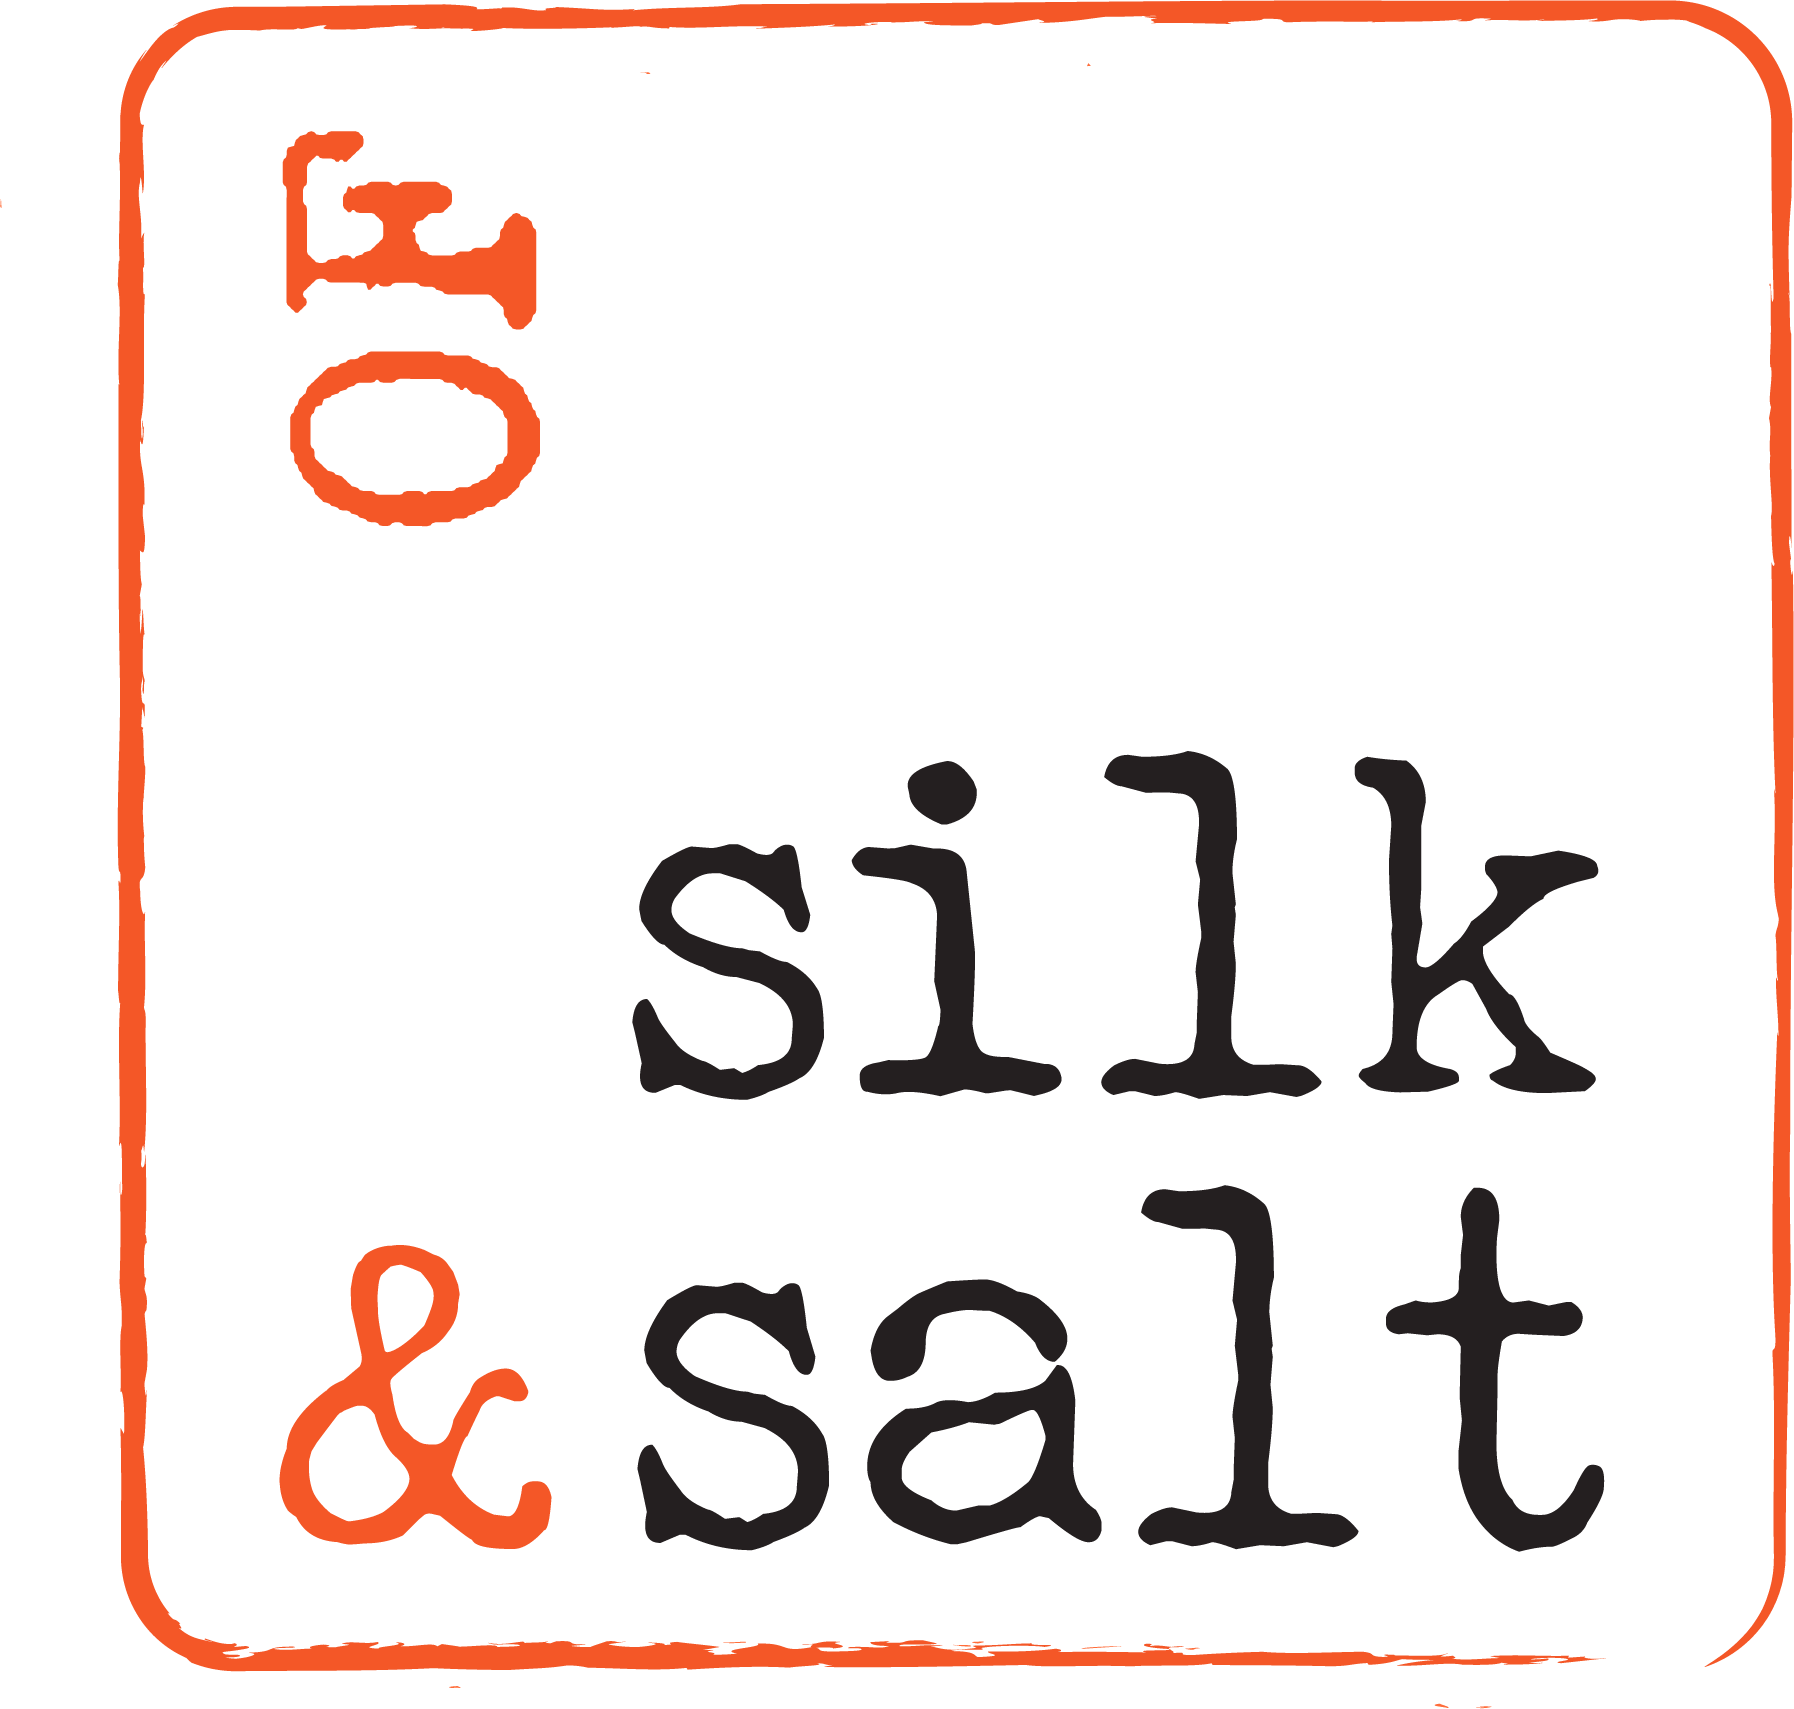 Of silk & salt